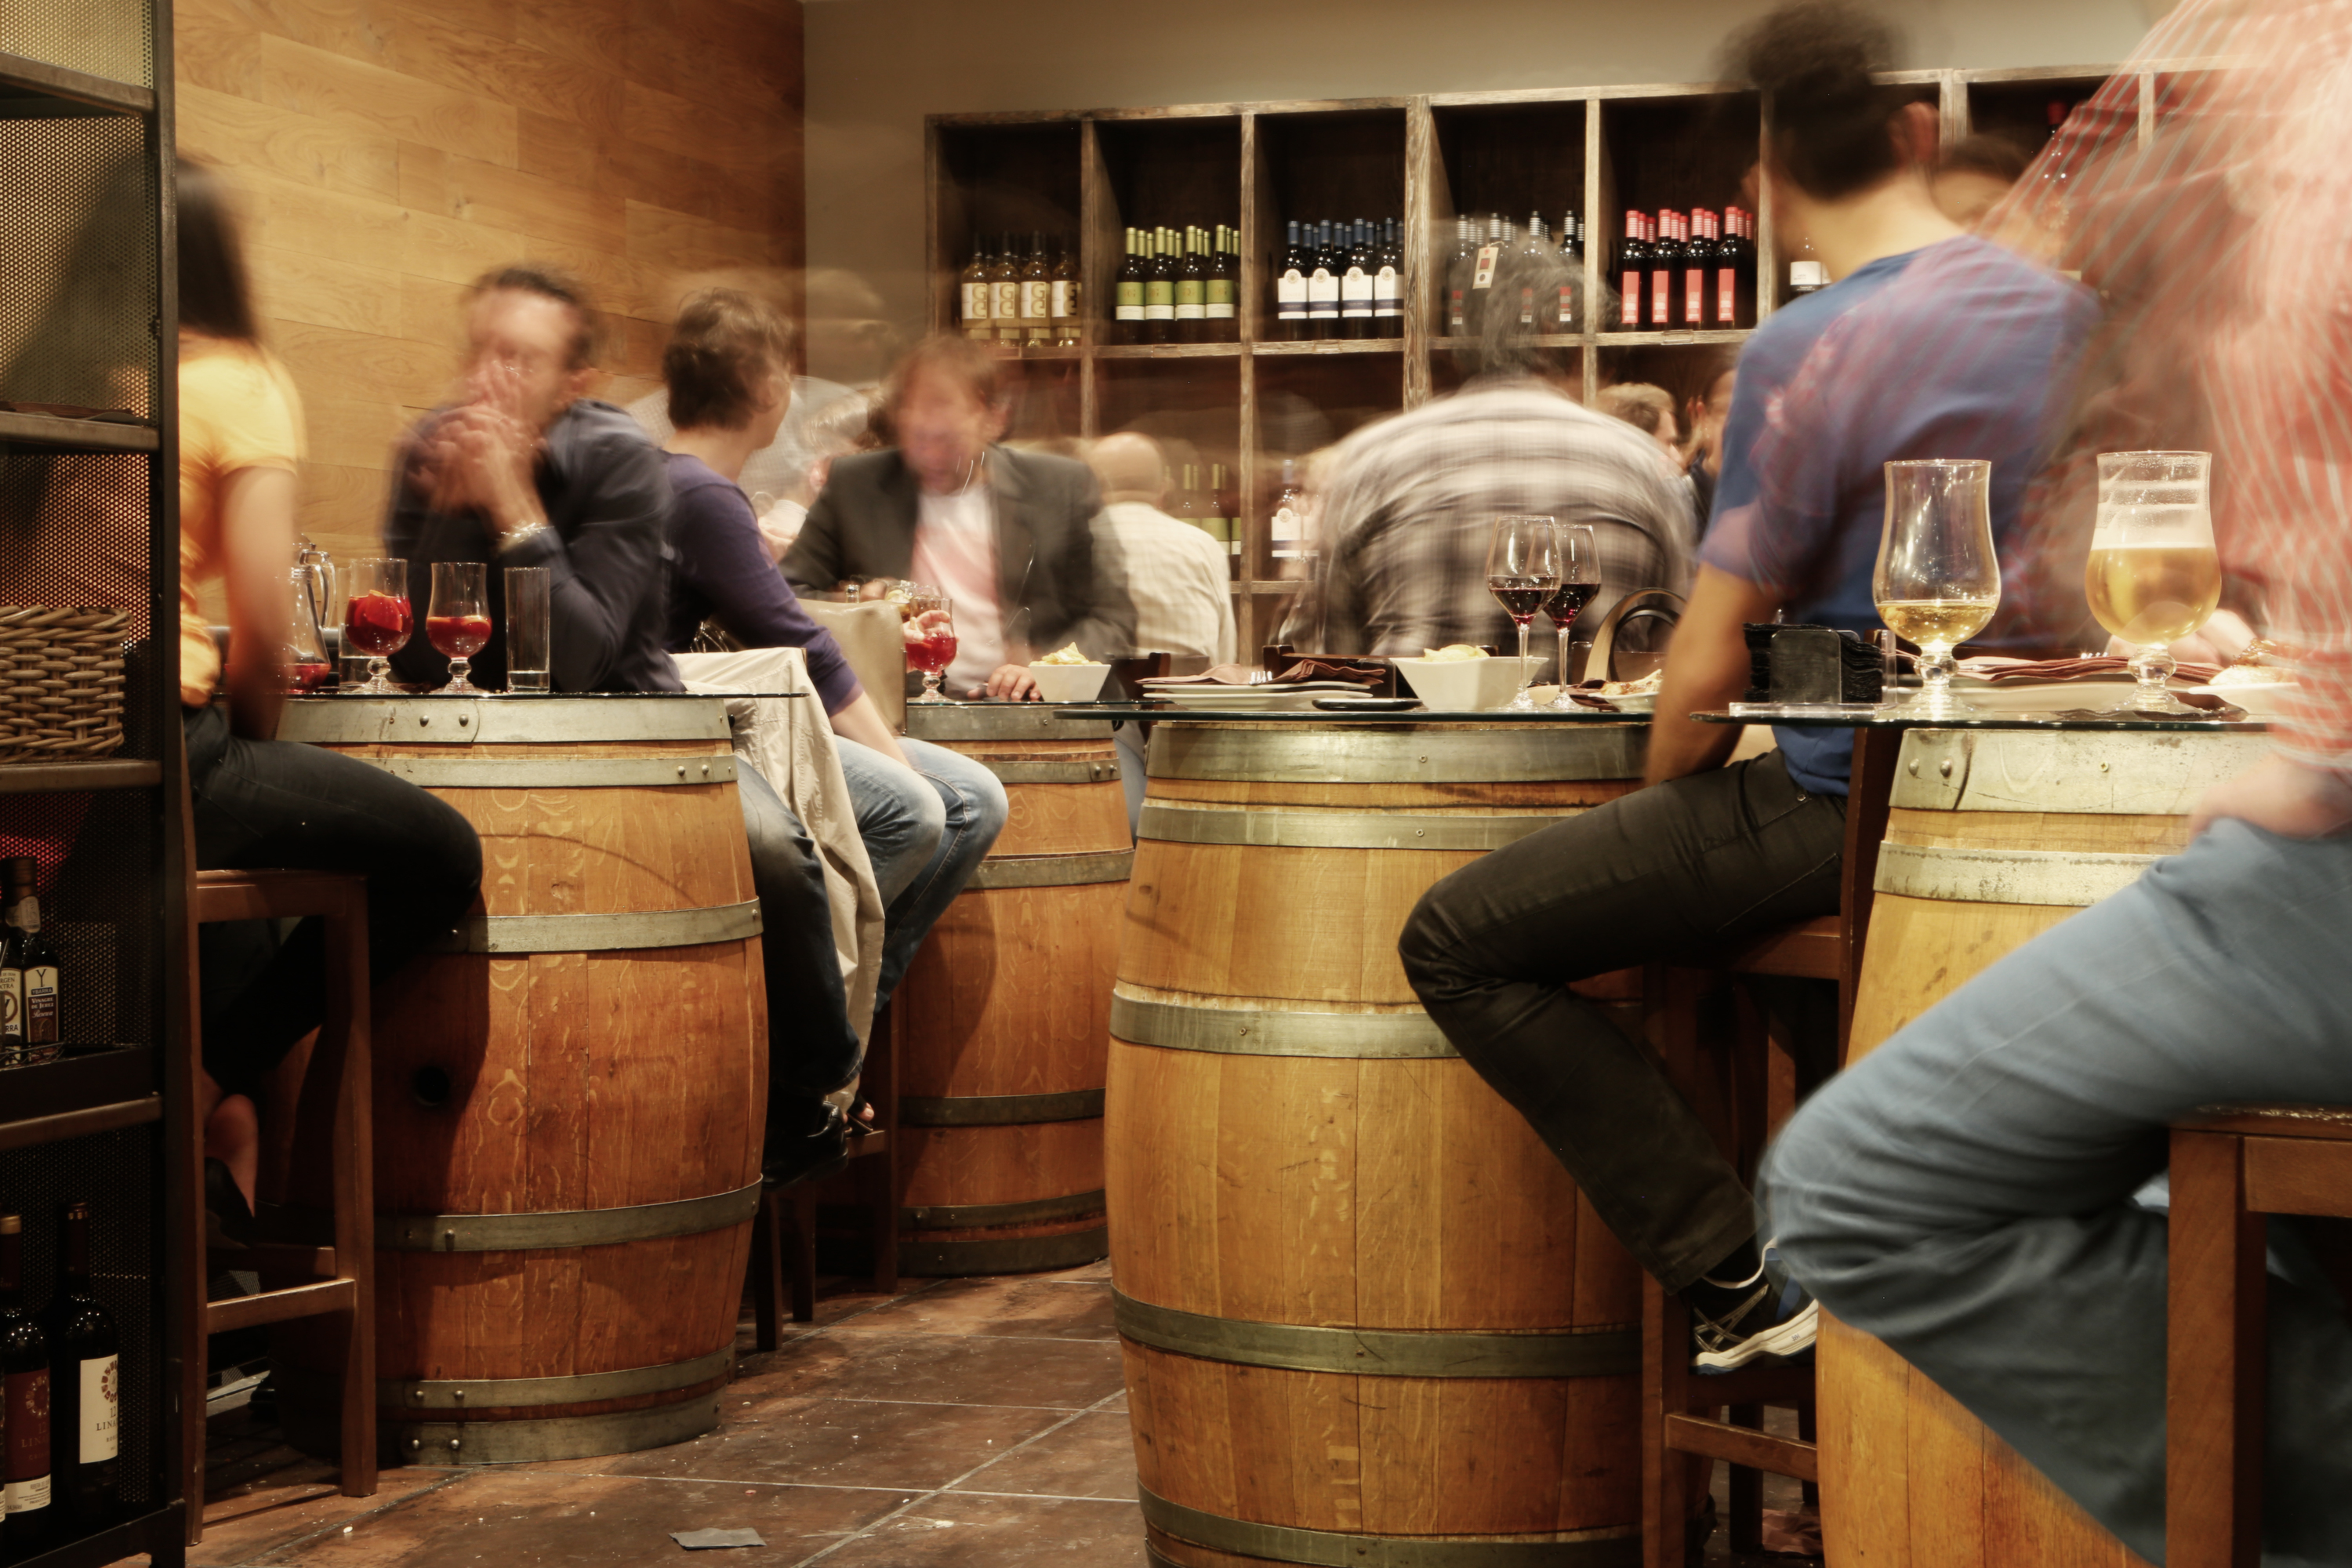 47 really cheap places to drink in Paris